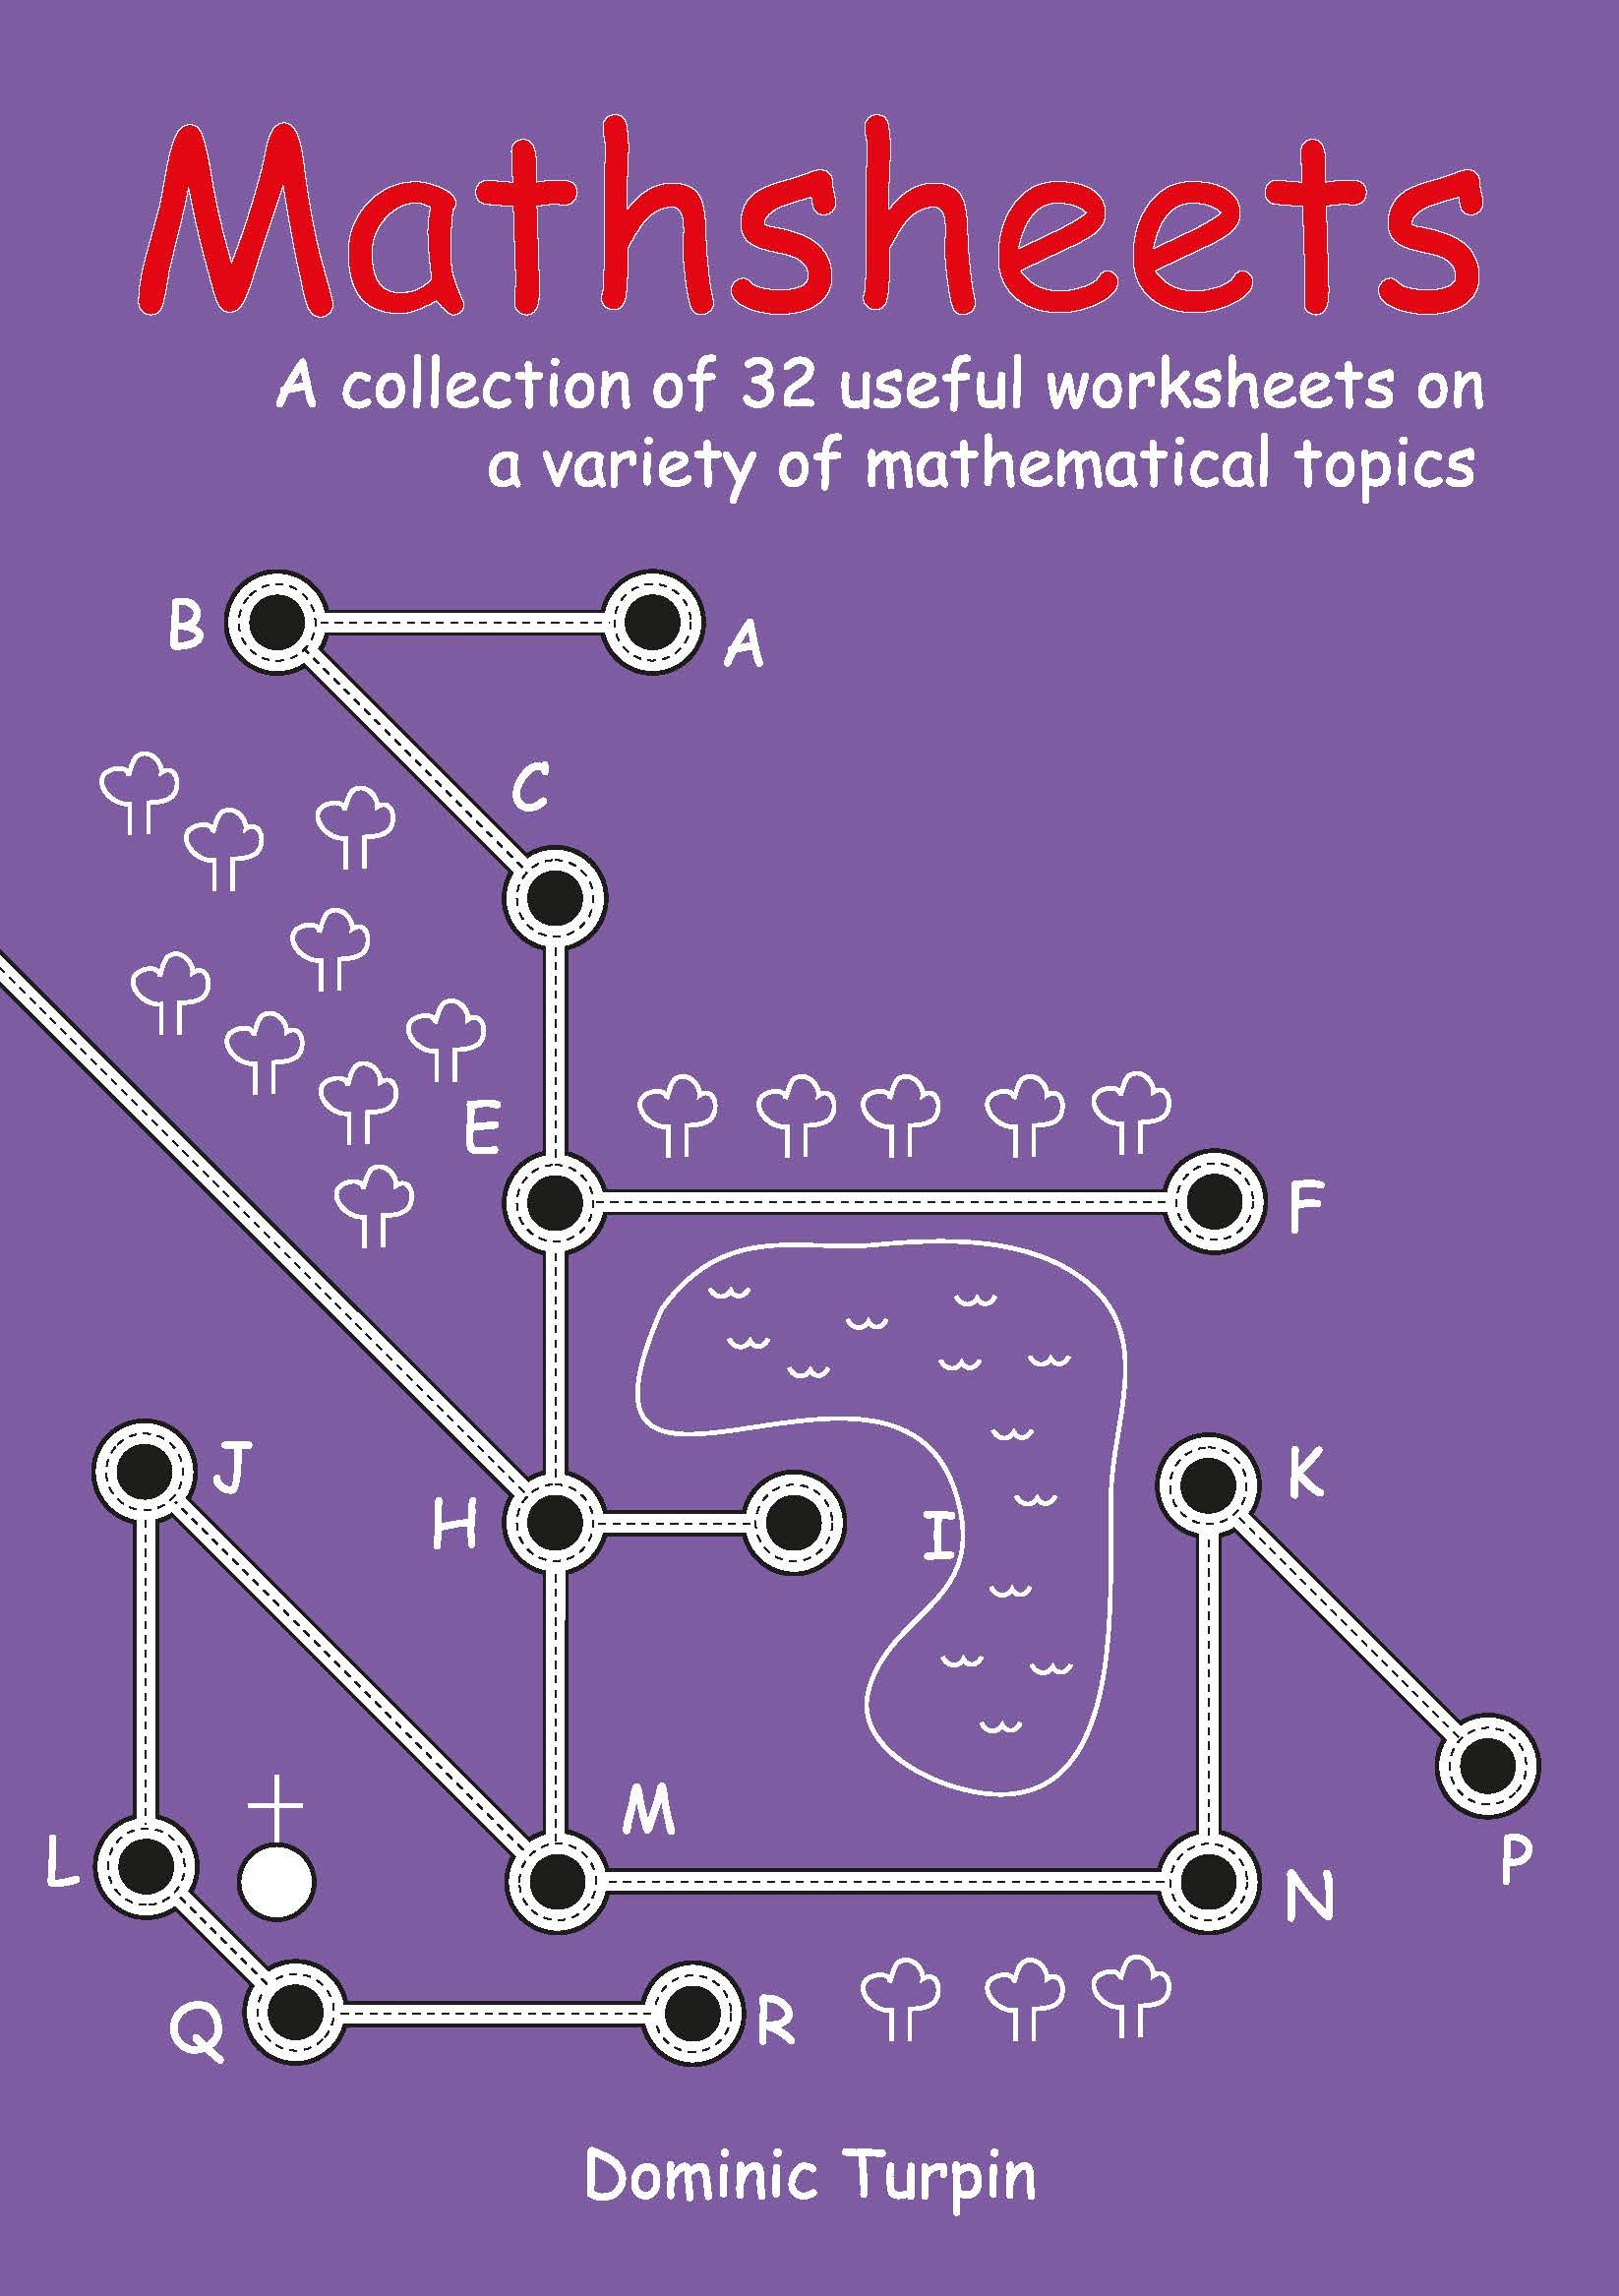 Mathsheets A Collection Of 32 Useful Worksheets On A